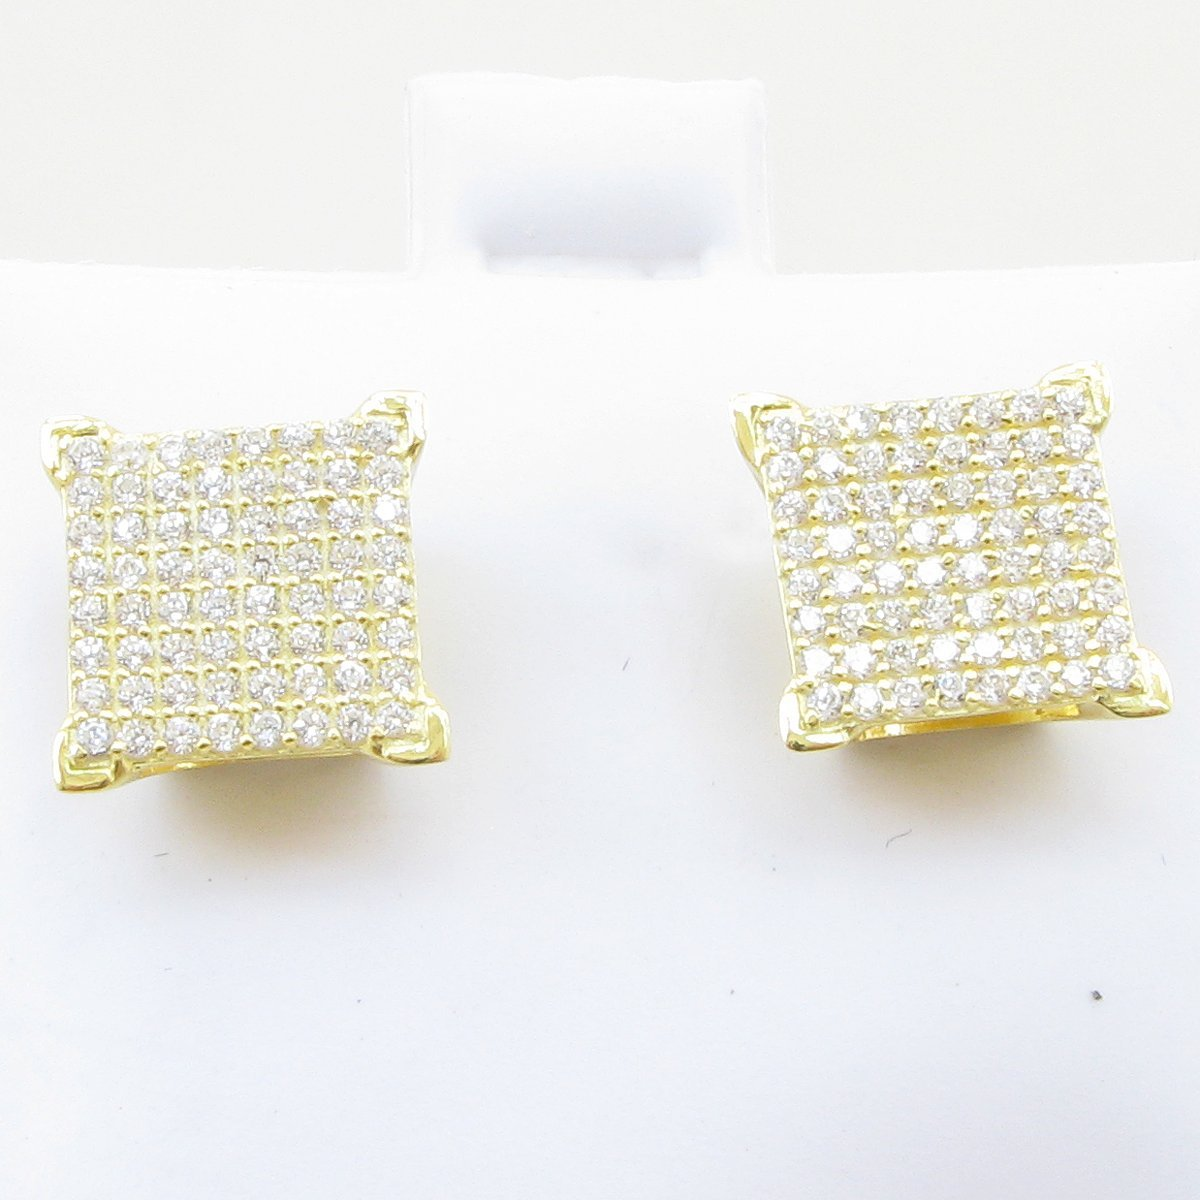 Mens .925 sterling silver Yellow 8 row square earring MLCZ31 5mm thick and 10mm wide Size